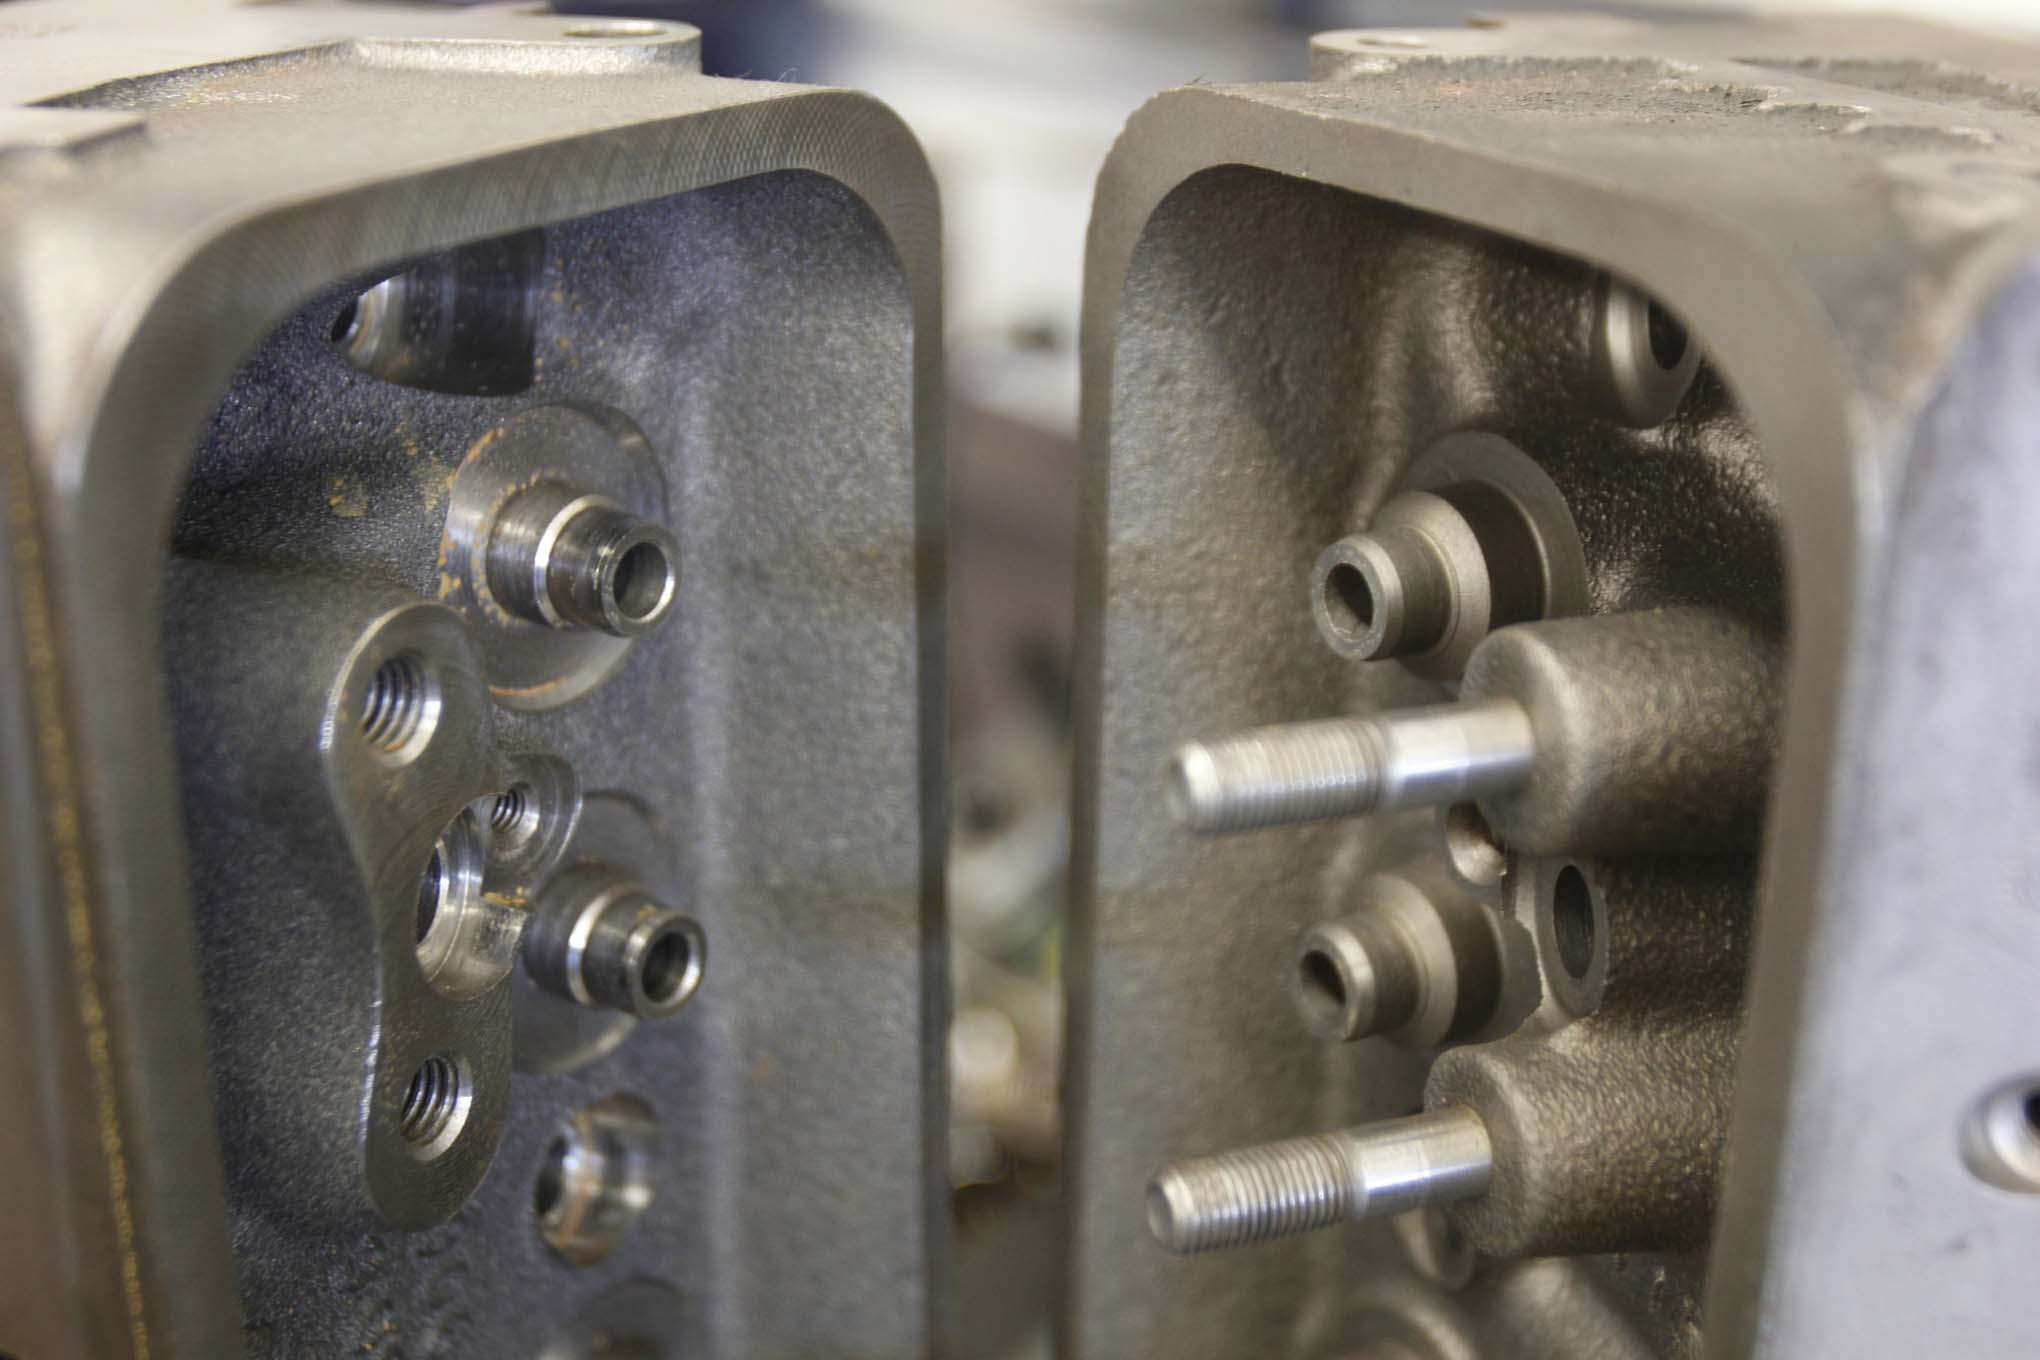 These pictures show the difference in the shape of the valve-guide boss between the Engine Quest cylinder heads and the production Vortec heads. The smaller valve-guide boss won't interfere with the spring retainer at moderate amounts of valve lift. Out of the box, Engine Quest's heads can safely accommodate 0.520-inch lift.